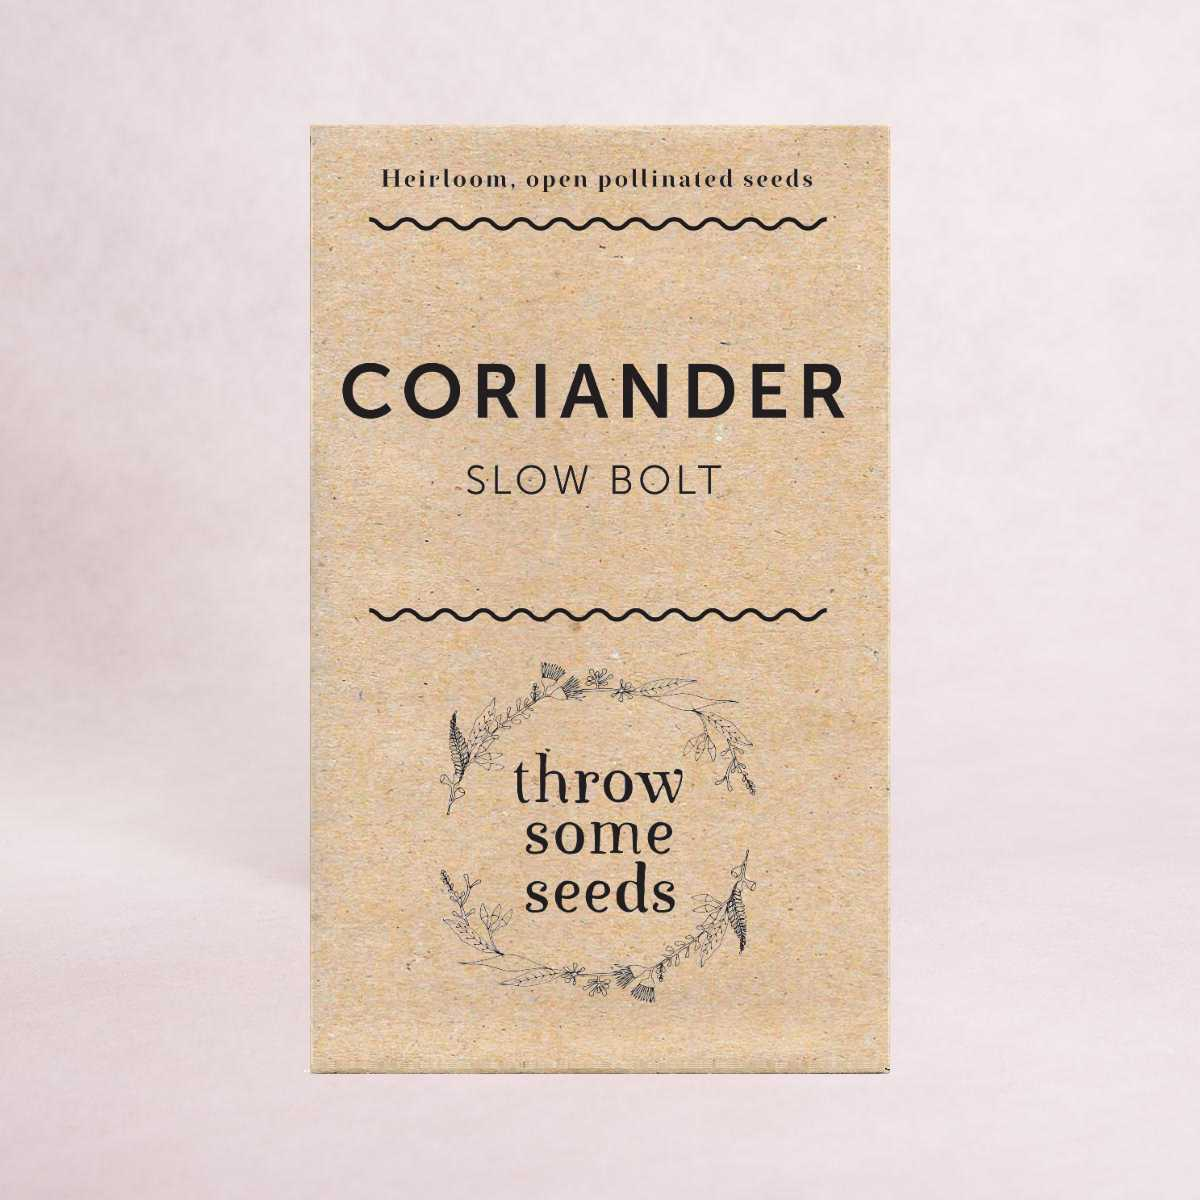 Coriander (Slow bolt) Seeds - Seeds - Throw Some Seeds - Australian gardening gifts and eco products online!